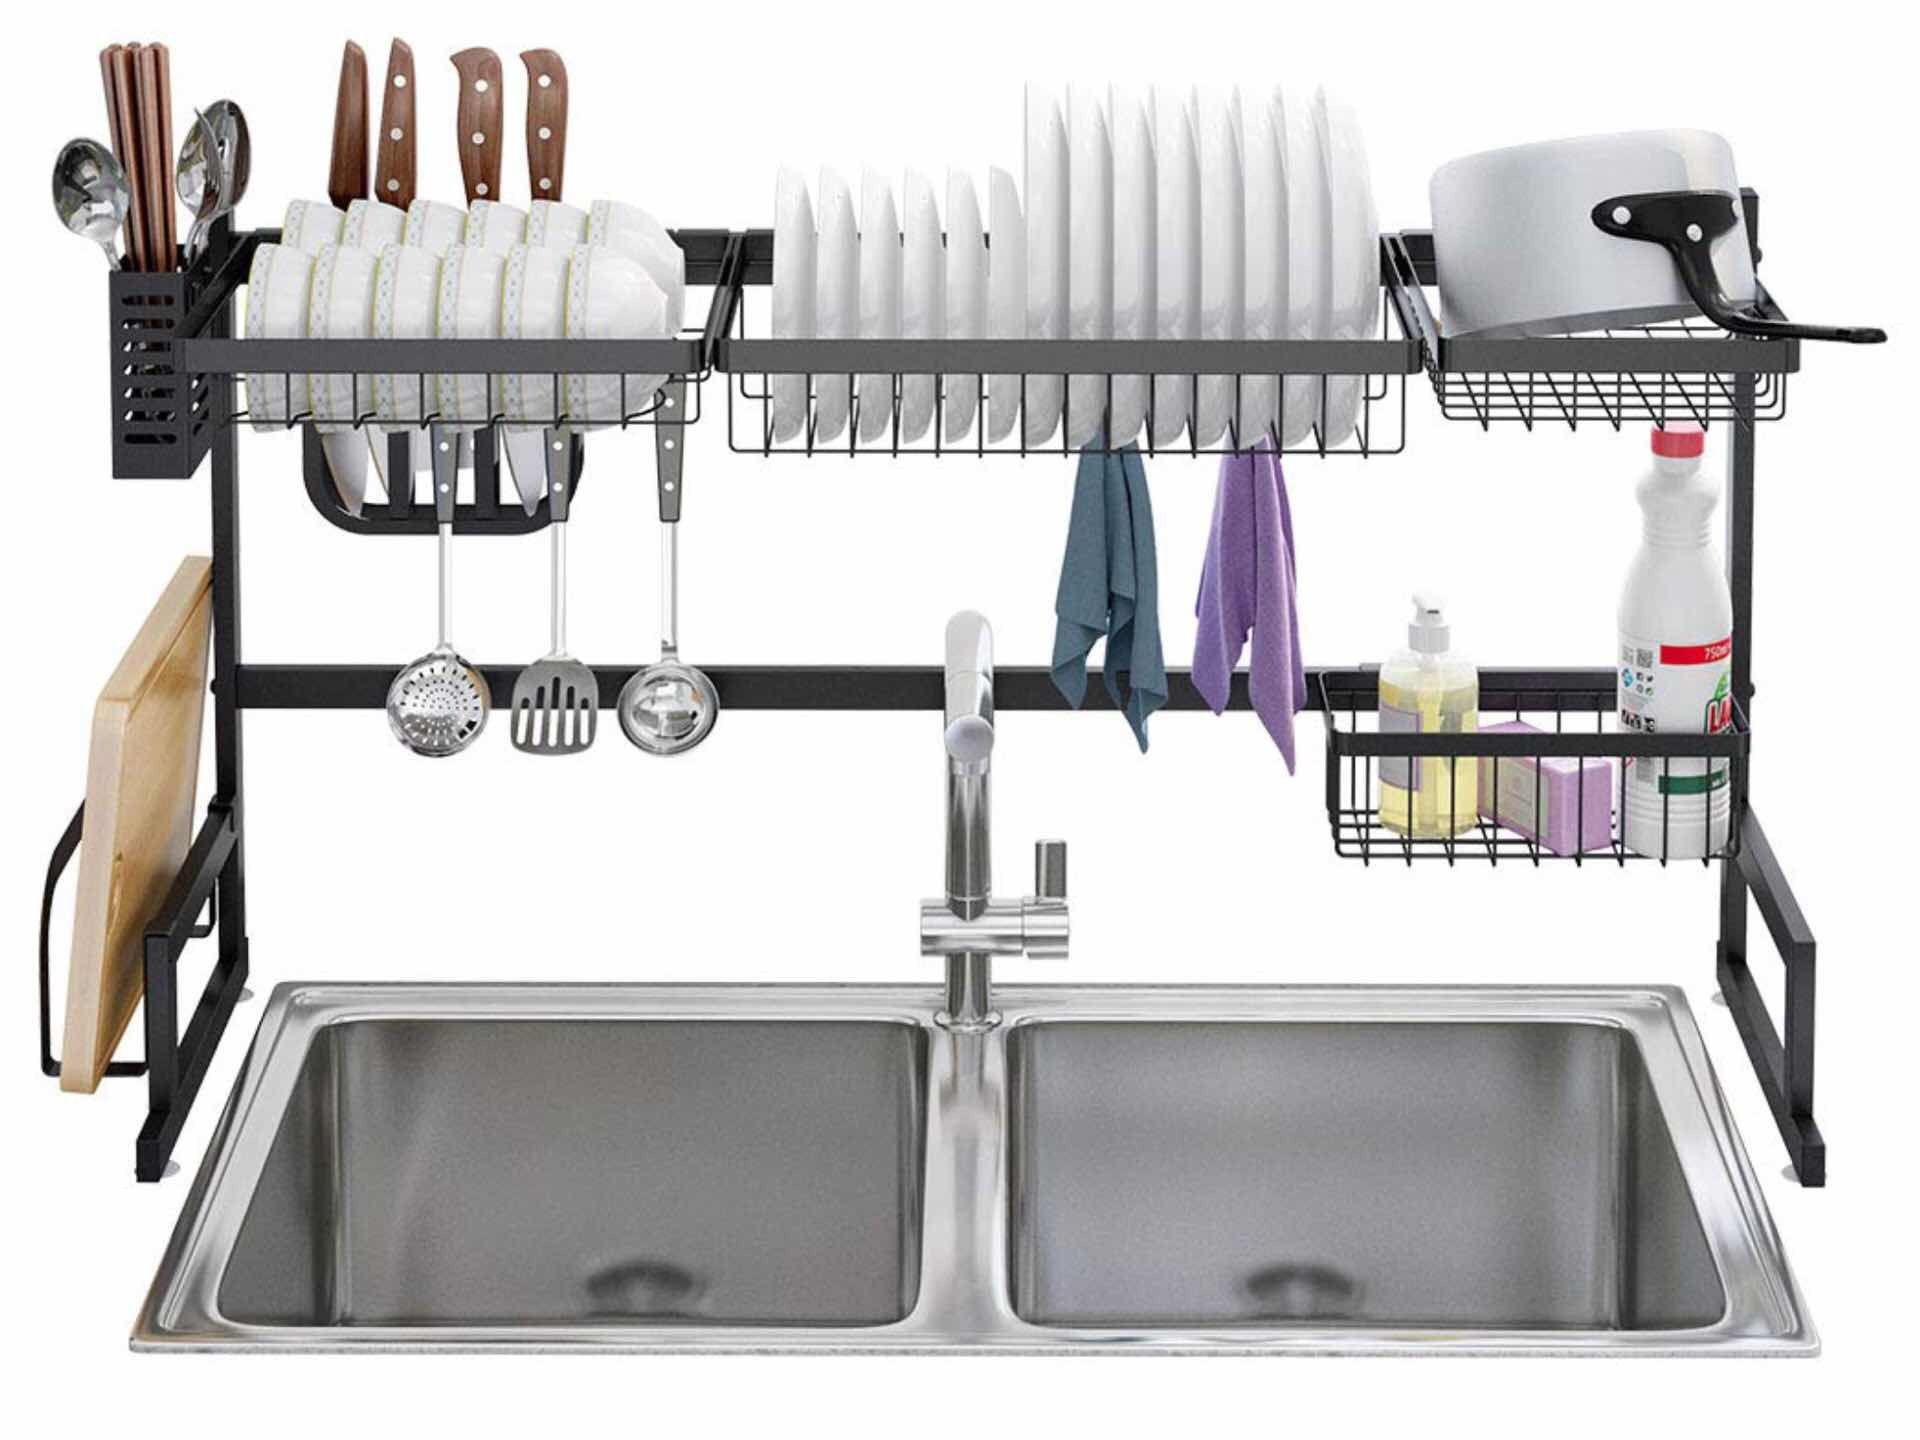 Langria over-the-sink dish rack. ($155 for the larger one, $130 for the smaller model — check their sink width requirements before buying)